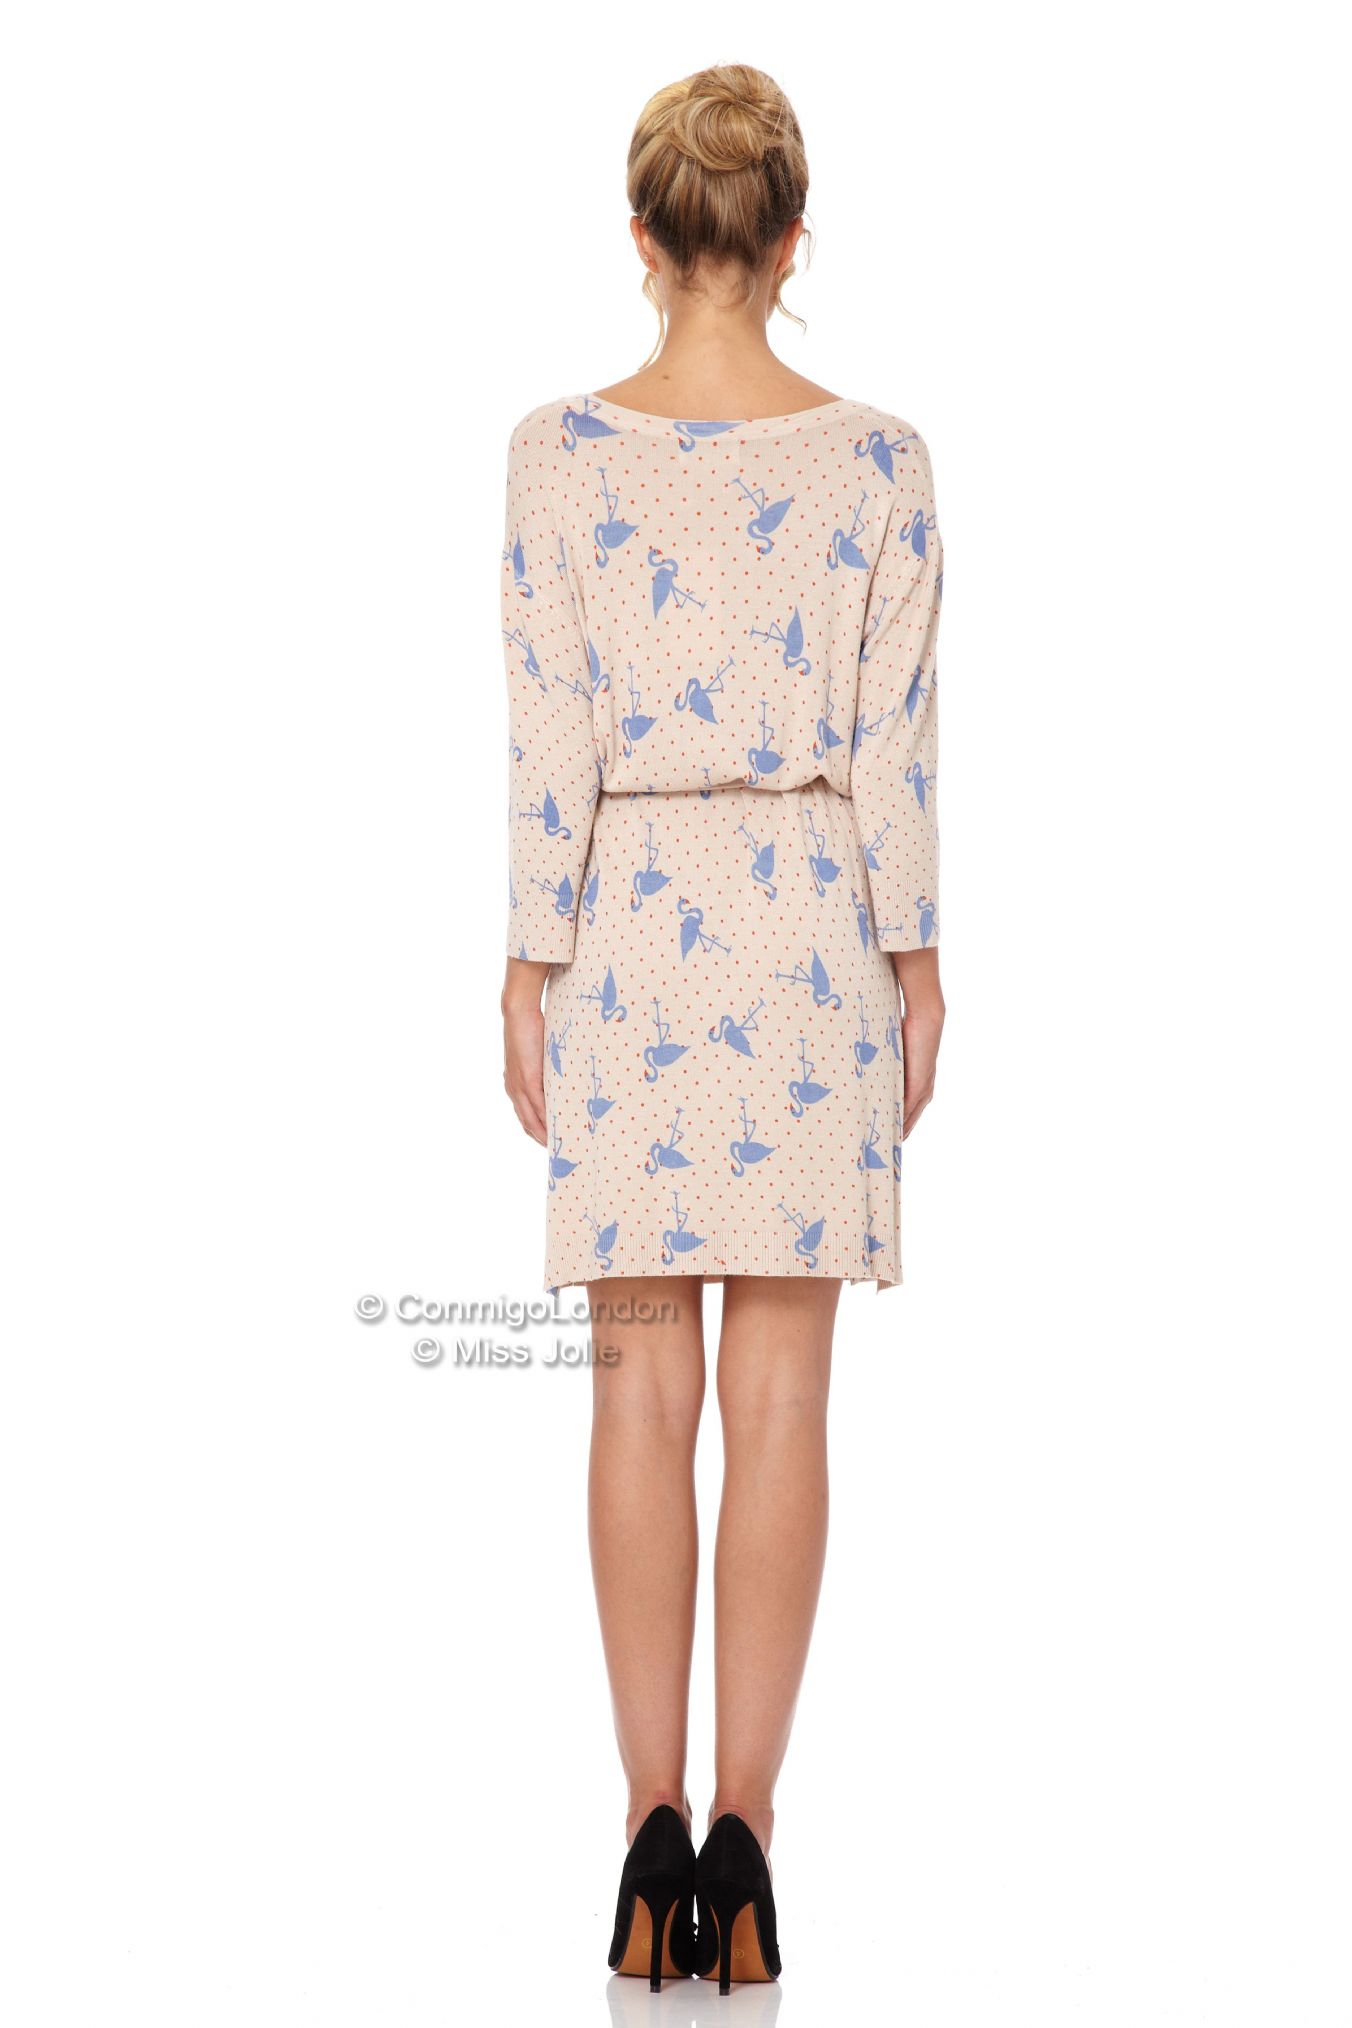 http://www.conmigolondon.co.uk/ekmps/shops/conmigo/images/miss-jolie-blue-flamingo-print-jersey-dress-beige-%5B3%5D-1287-p.jpg